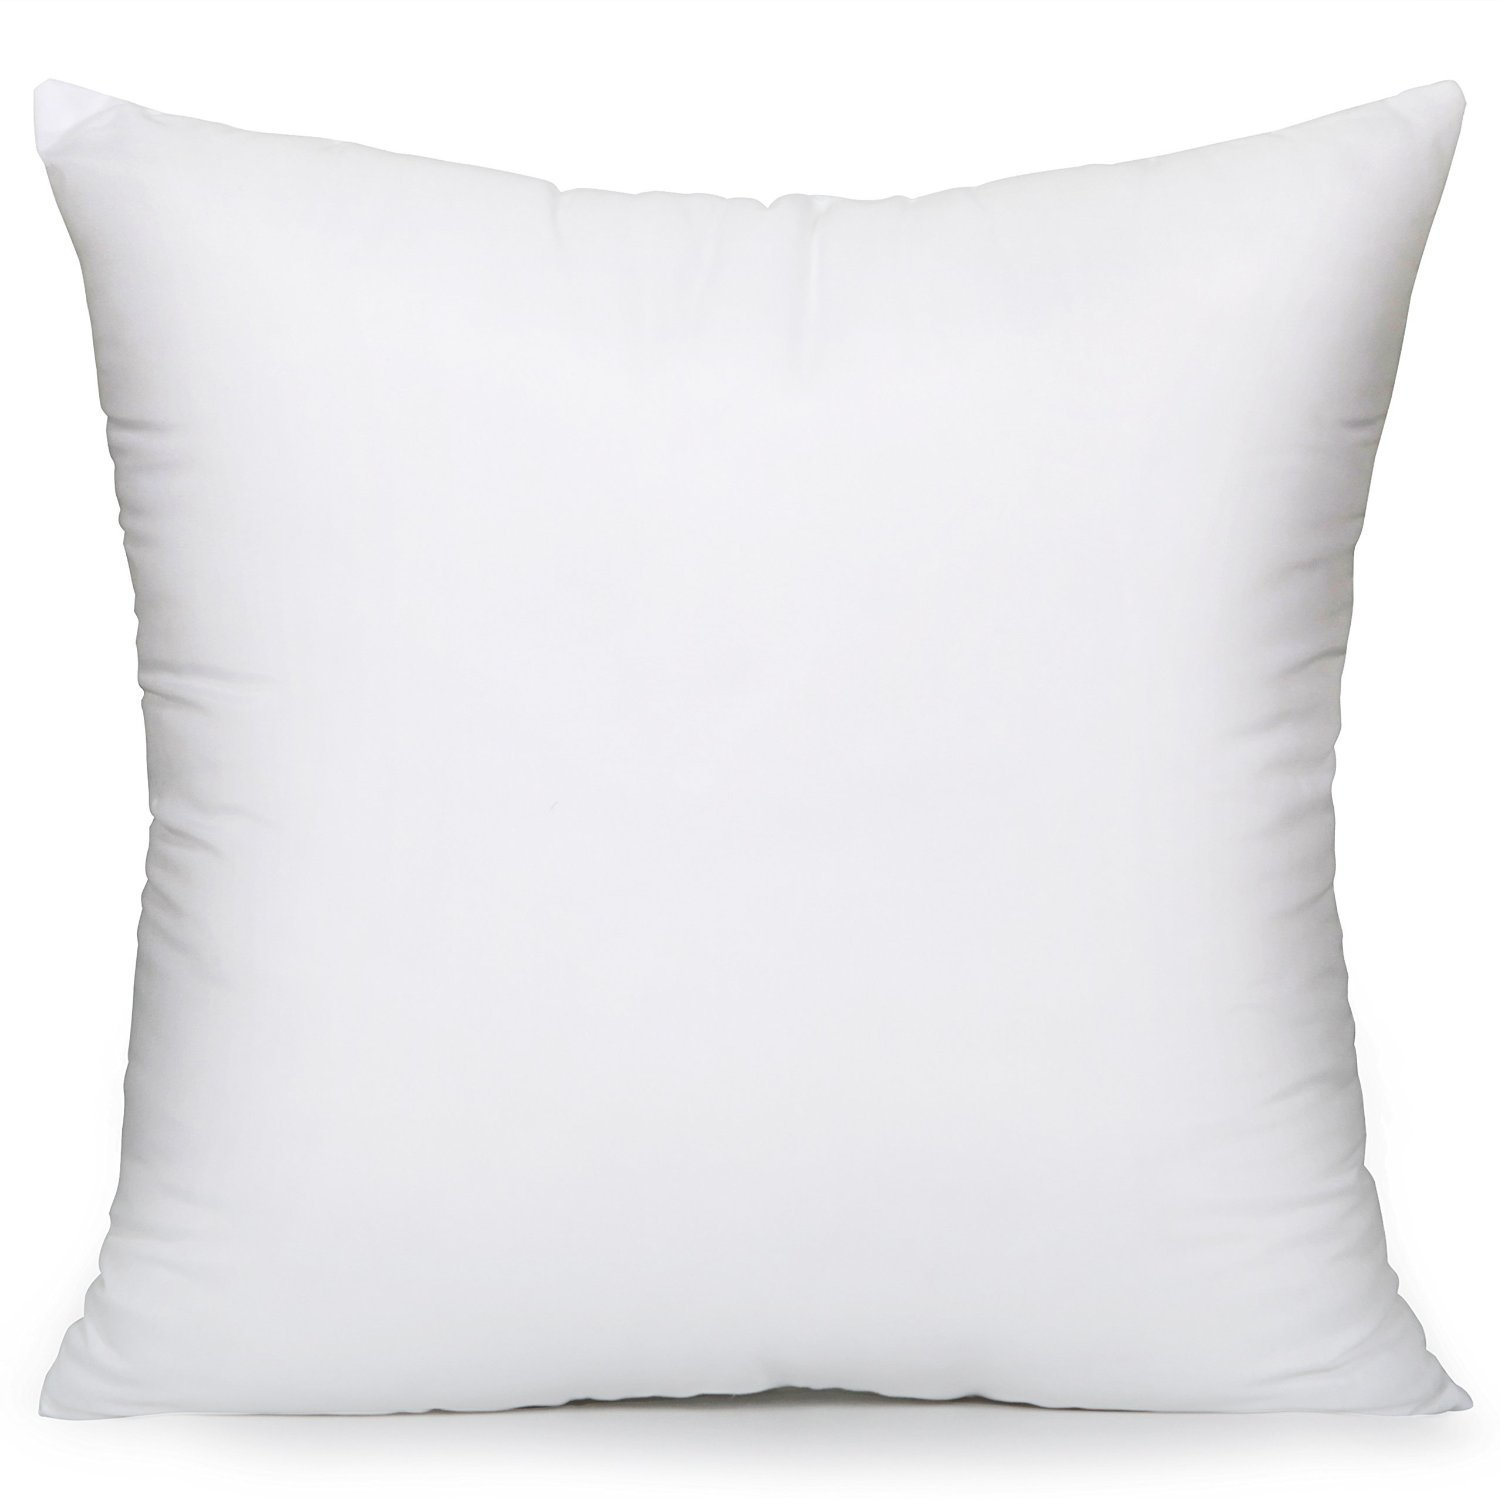 premium insert pillow form by threads and u loops